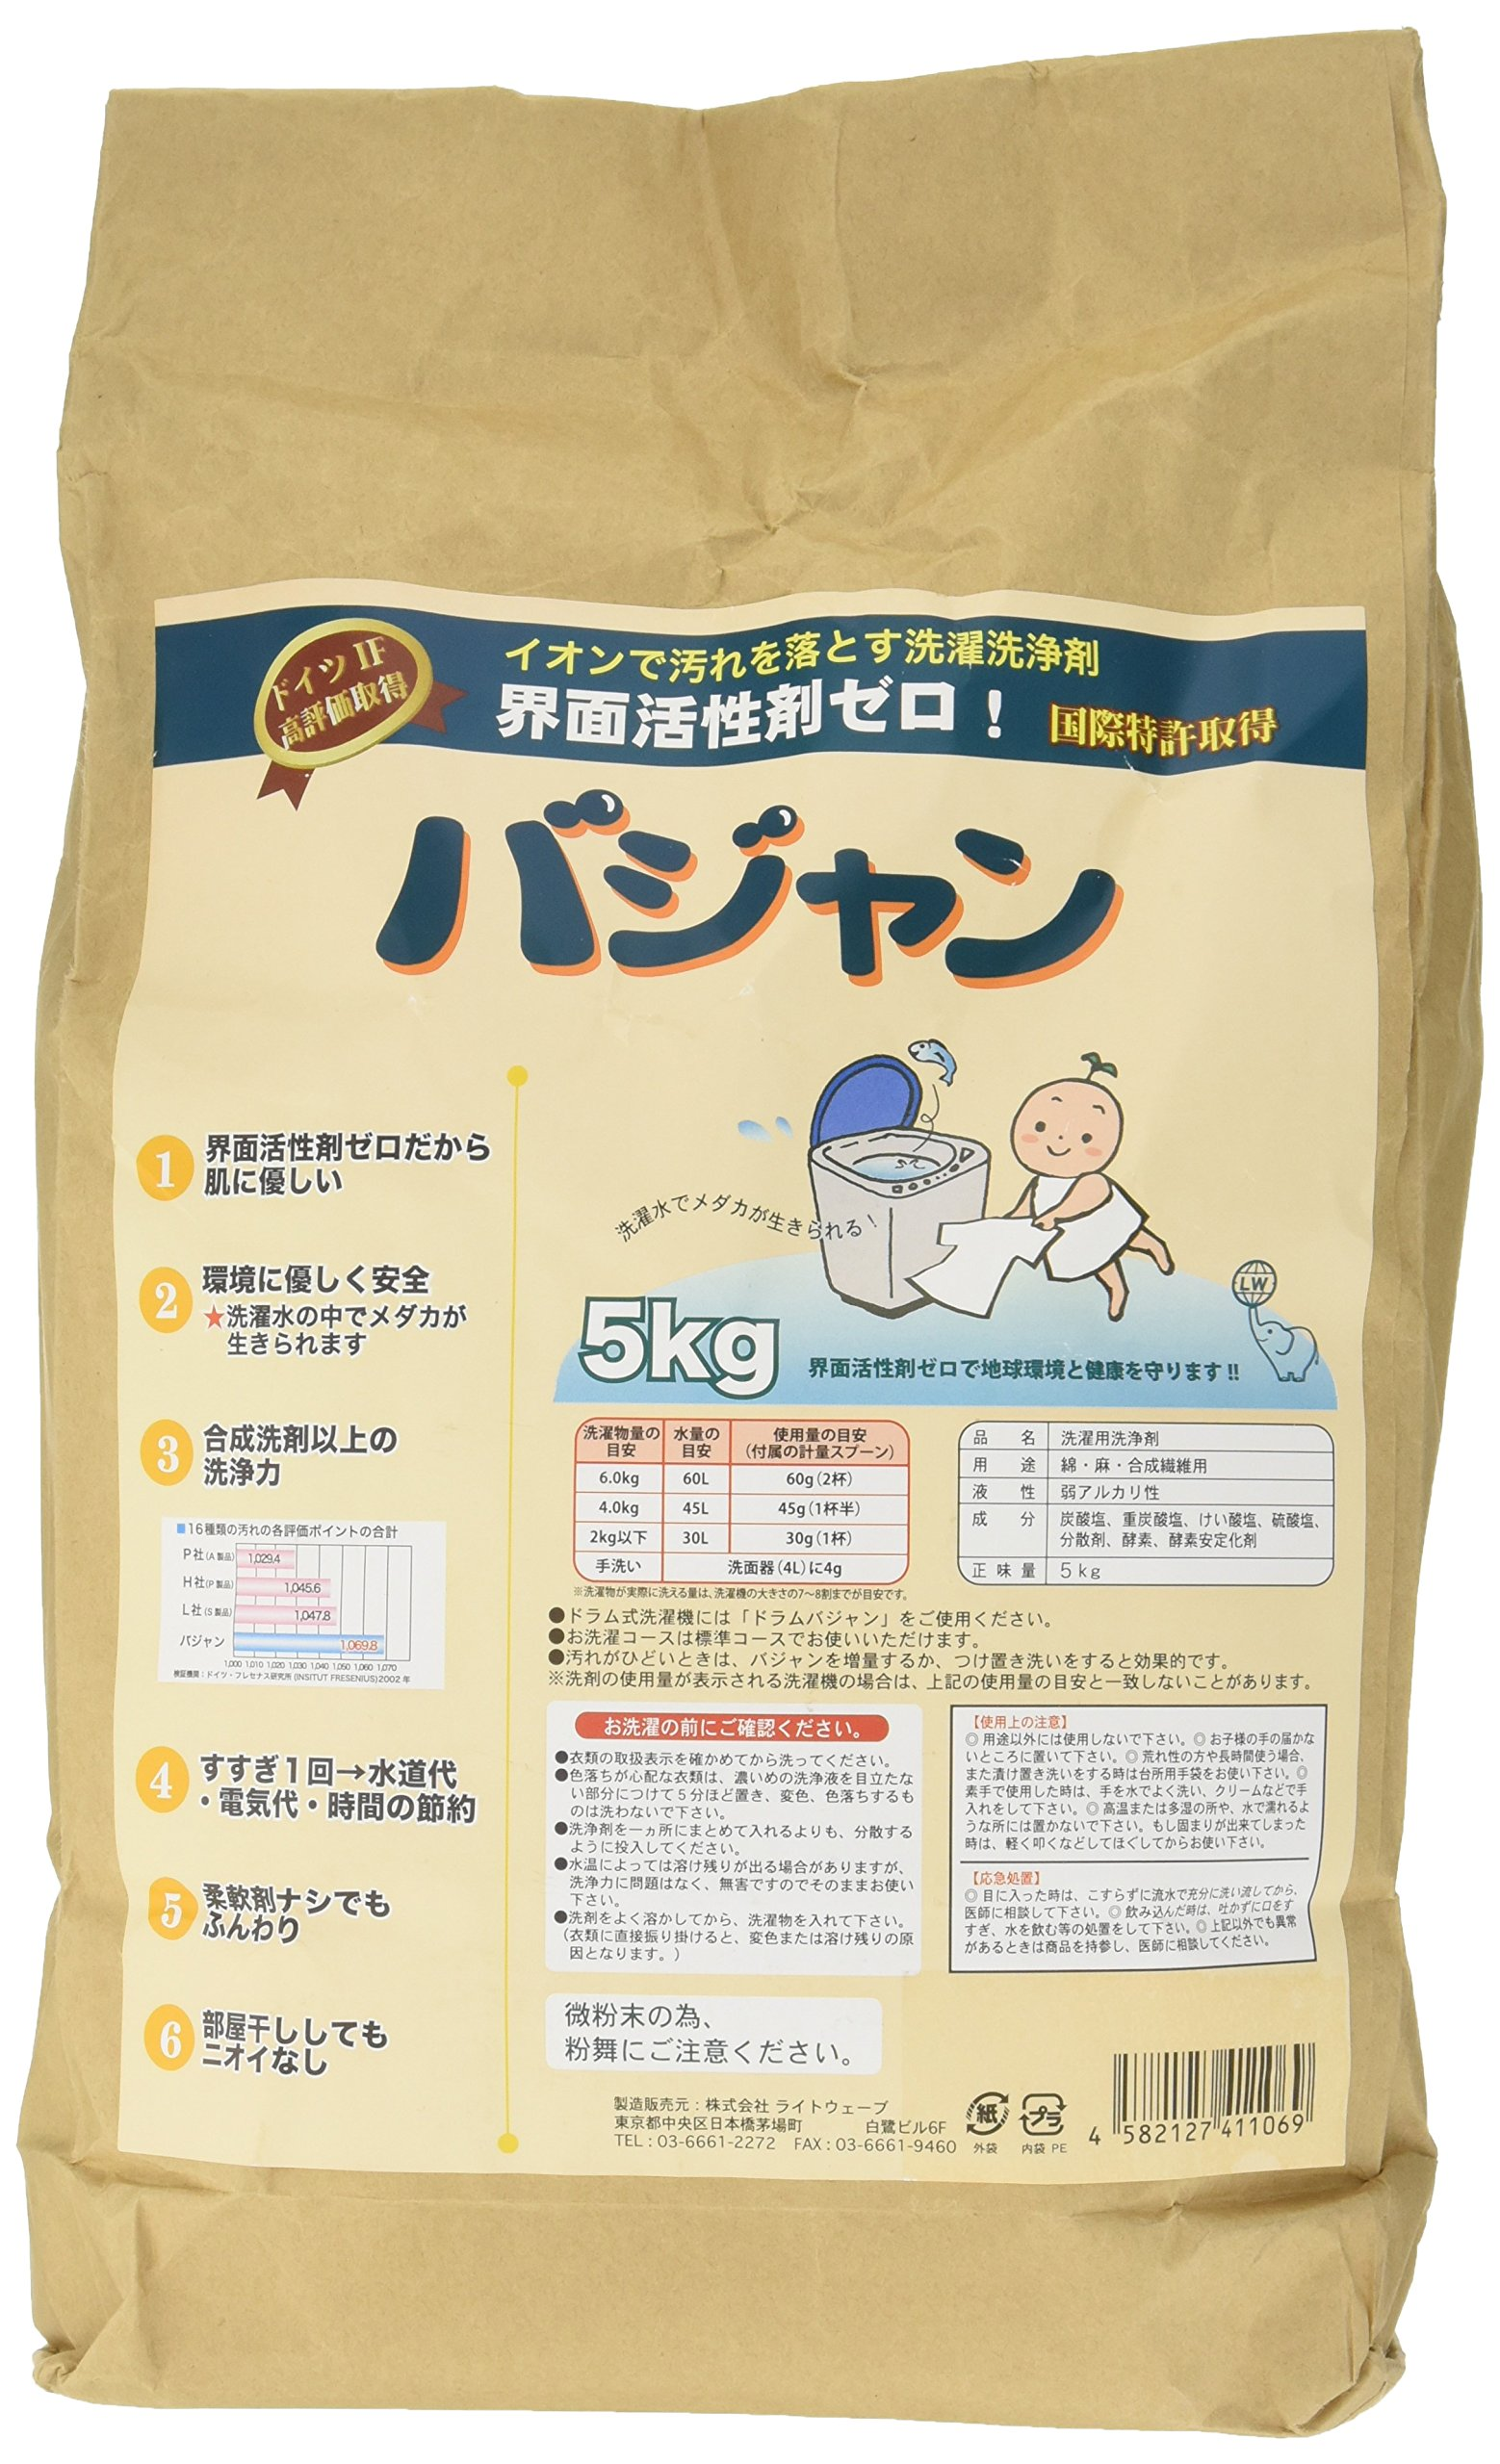 Extremely Earth Friendly&Skin Care Laundry Detergent,Bhajan,from Japan,11lb